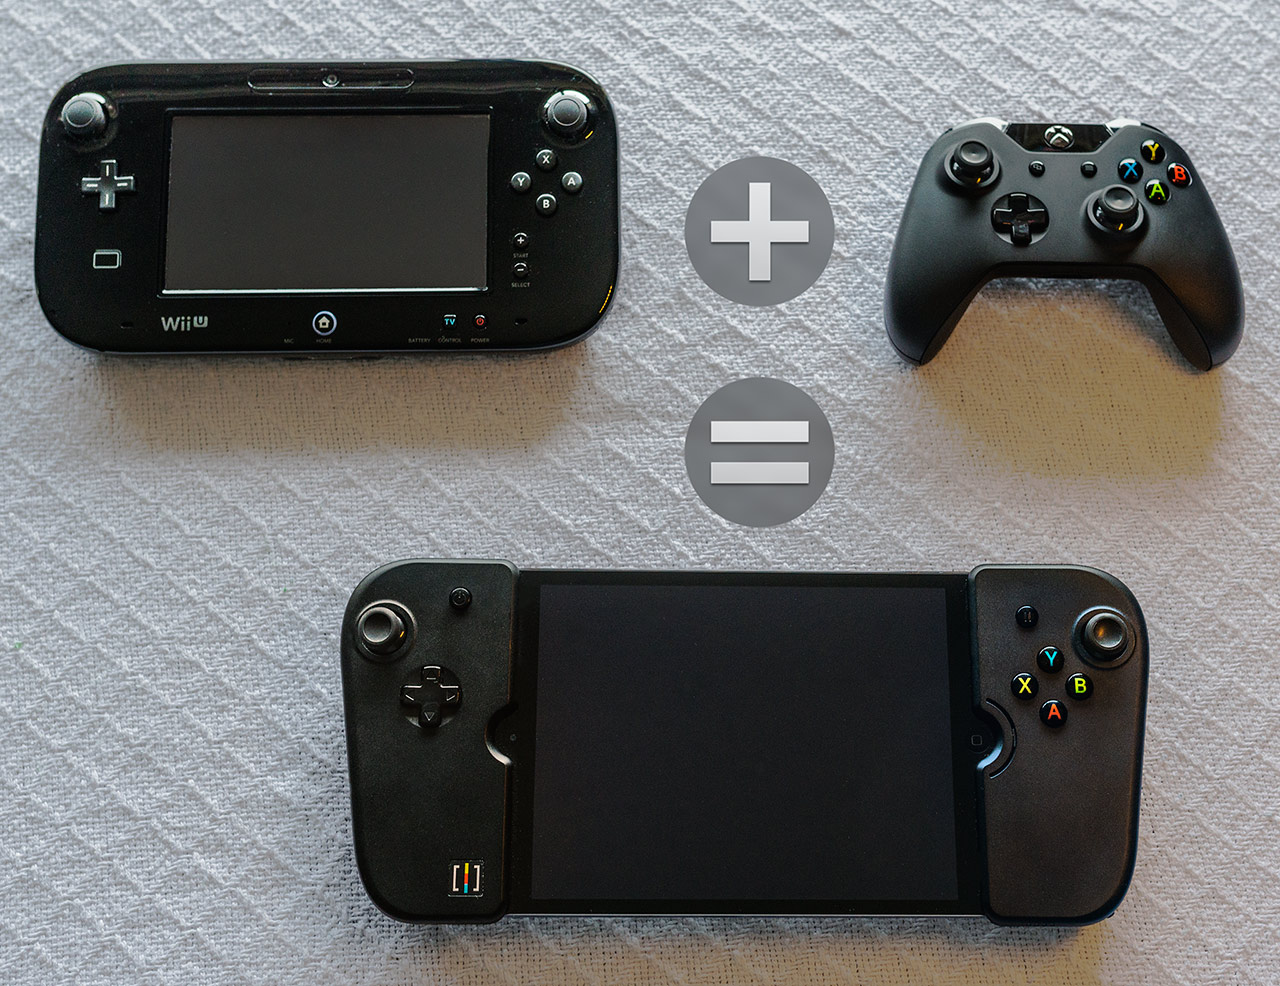 The Gamevice, The WiiU Gamepad, and the Xbox One Controller